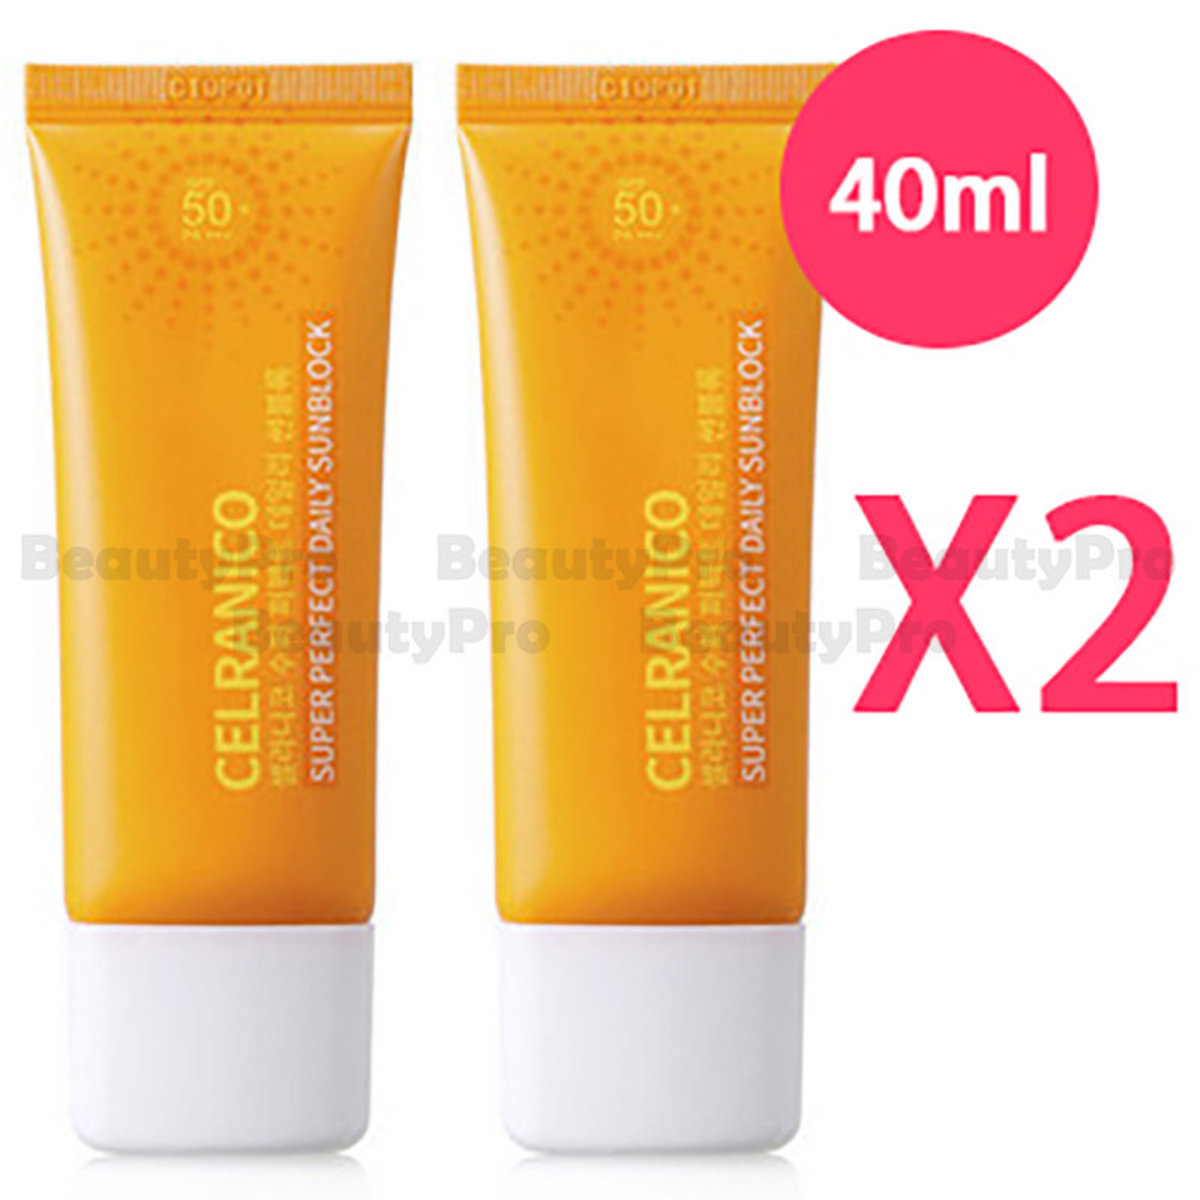 Celranico Super Perfect Daily SunBlock 40ml x2 [Parallel Import Product]